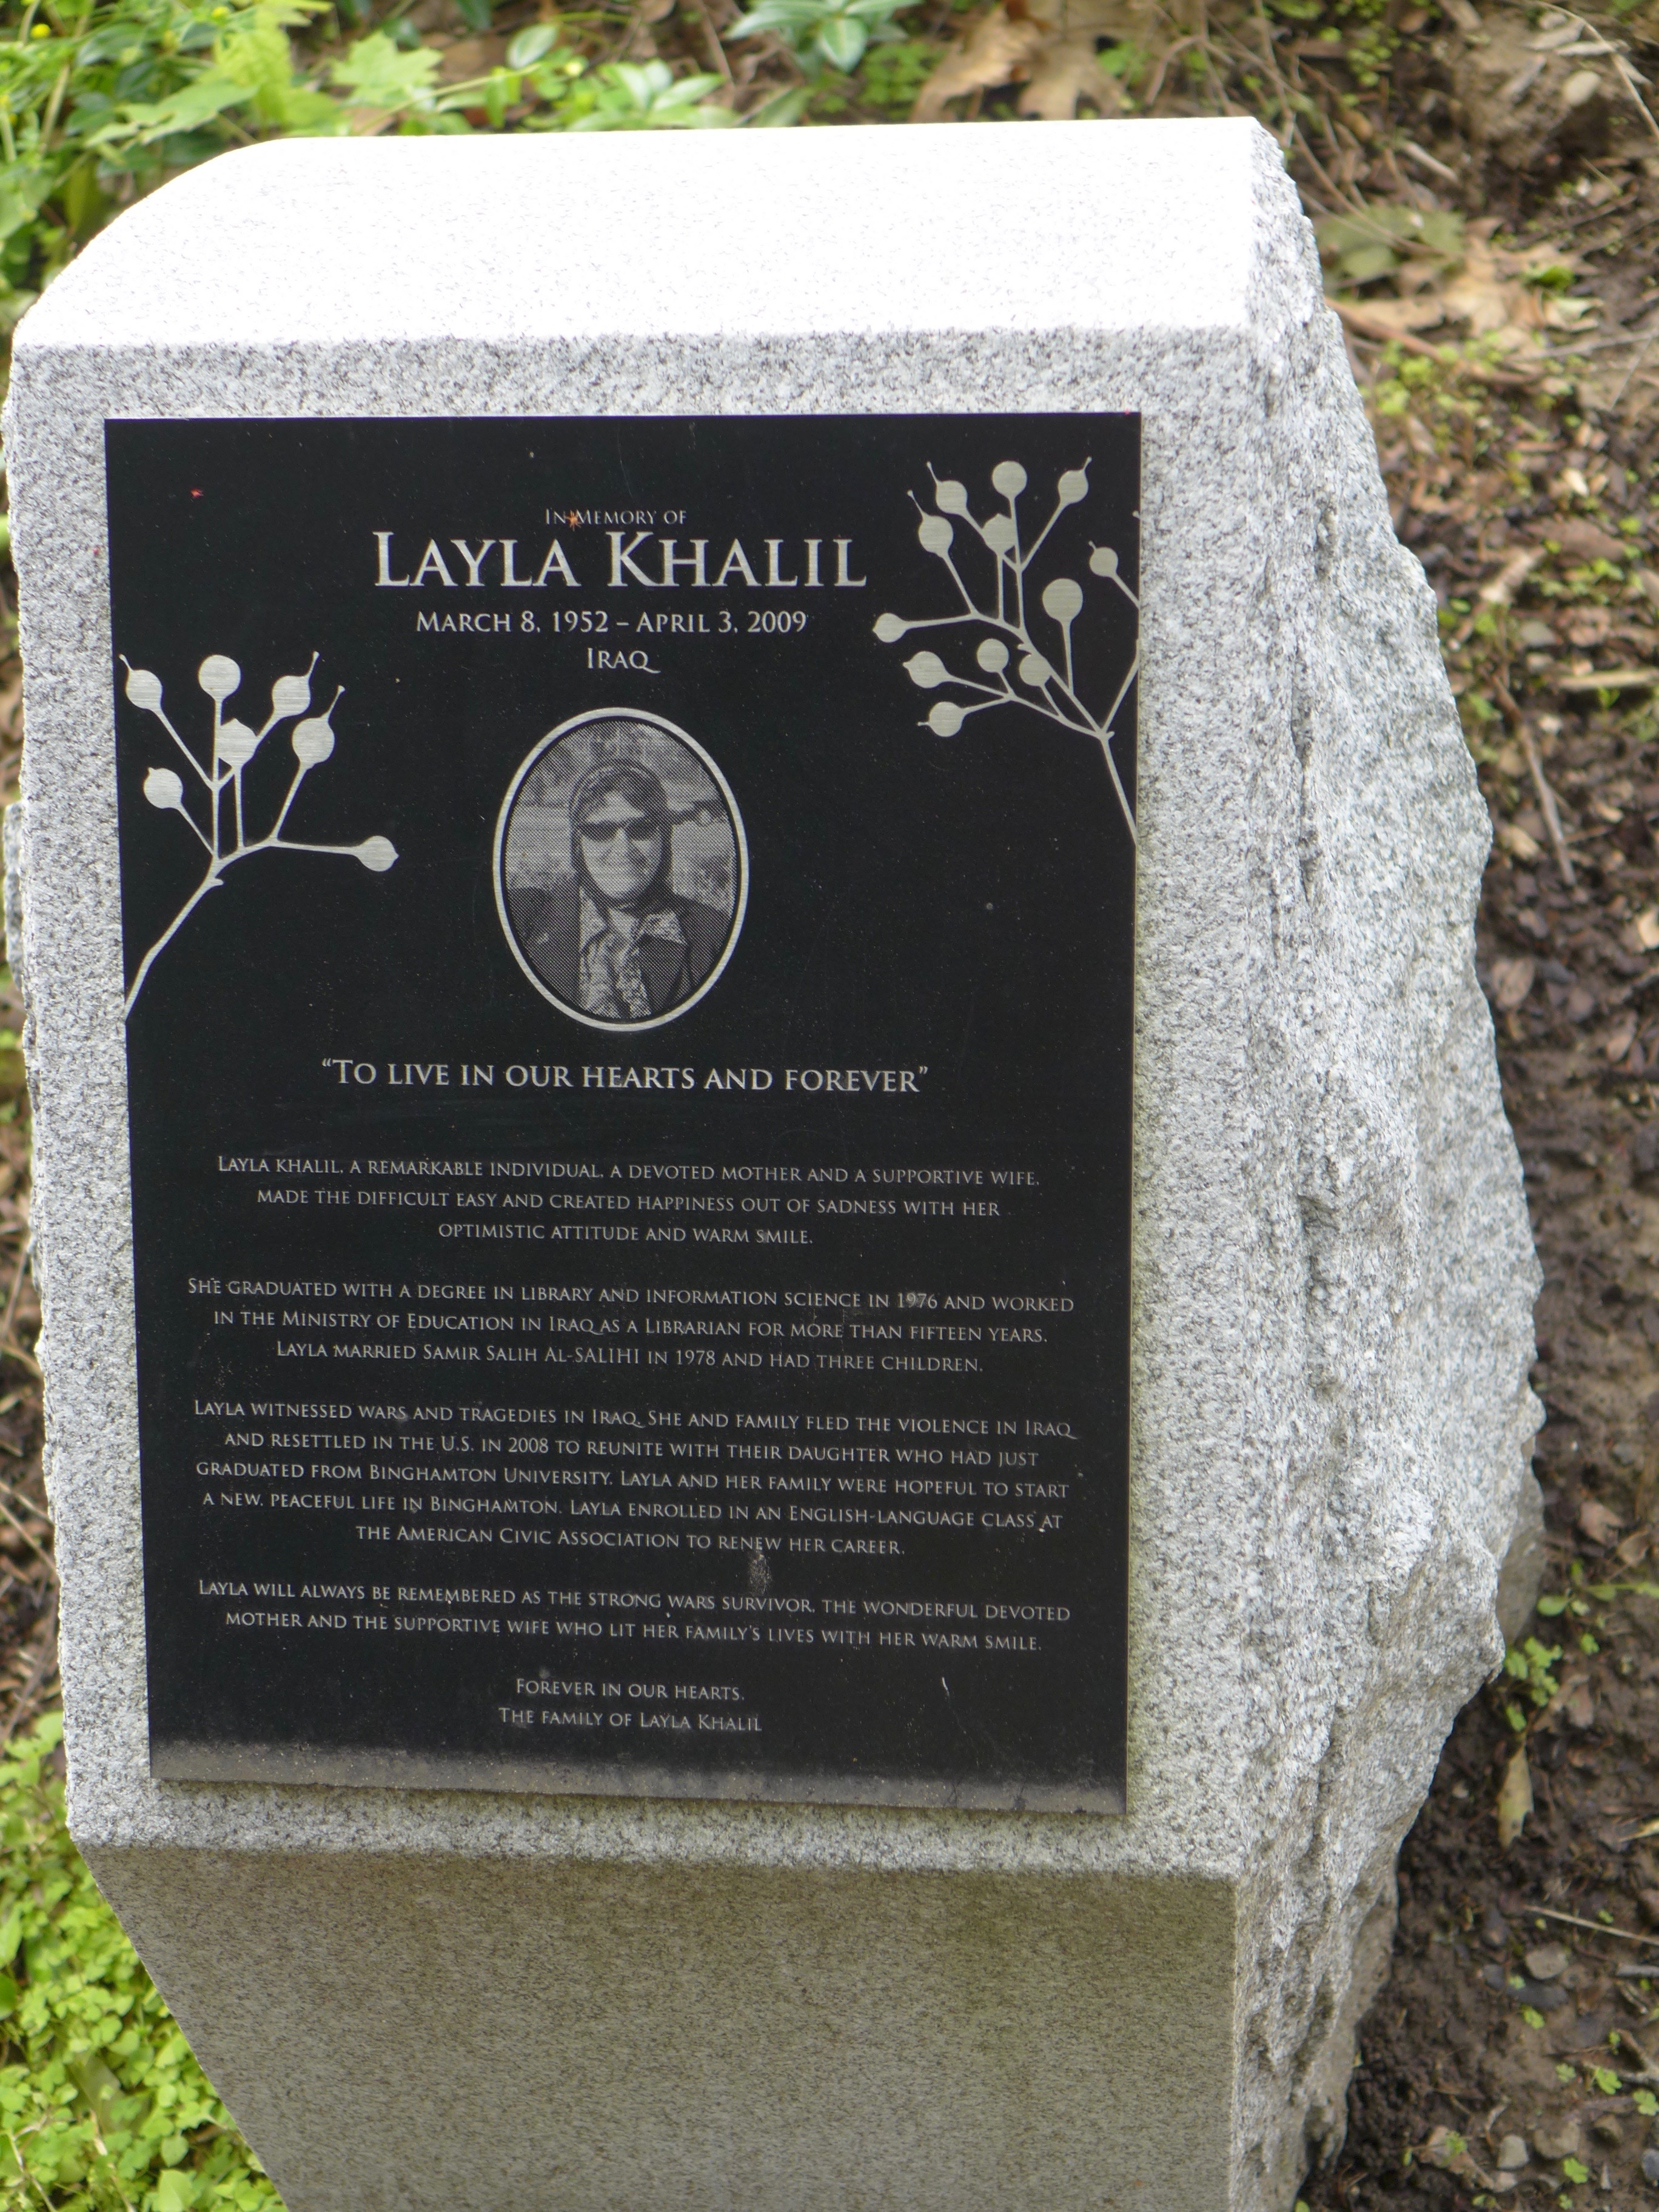 Memorial stone: Layla Khalil / Iraq